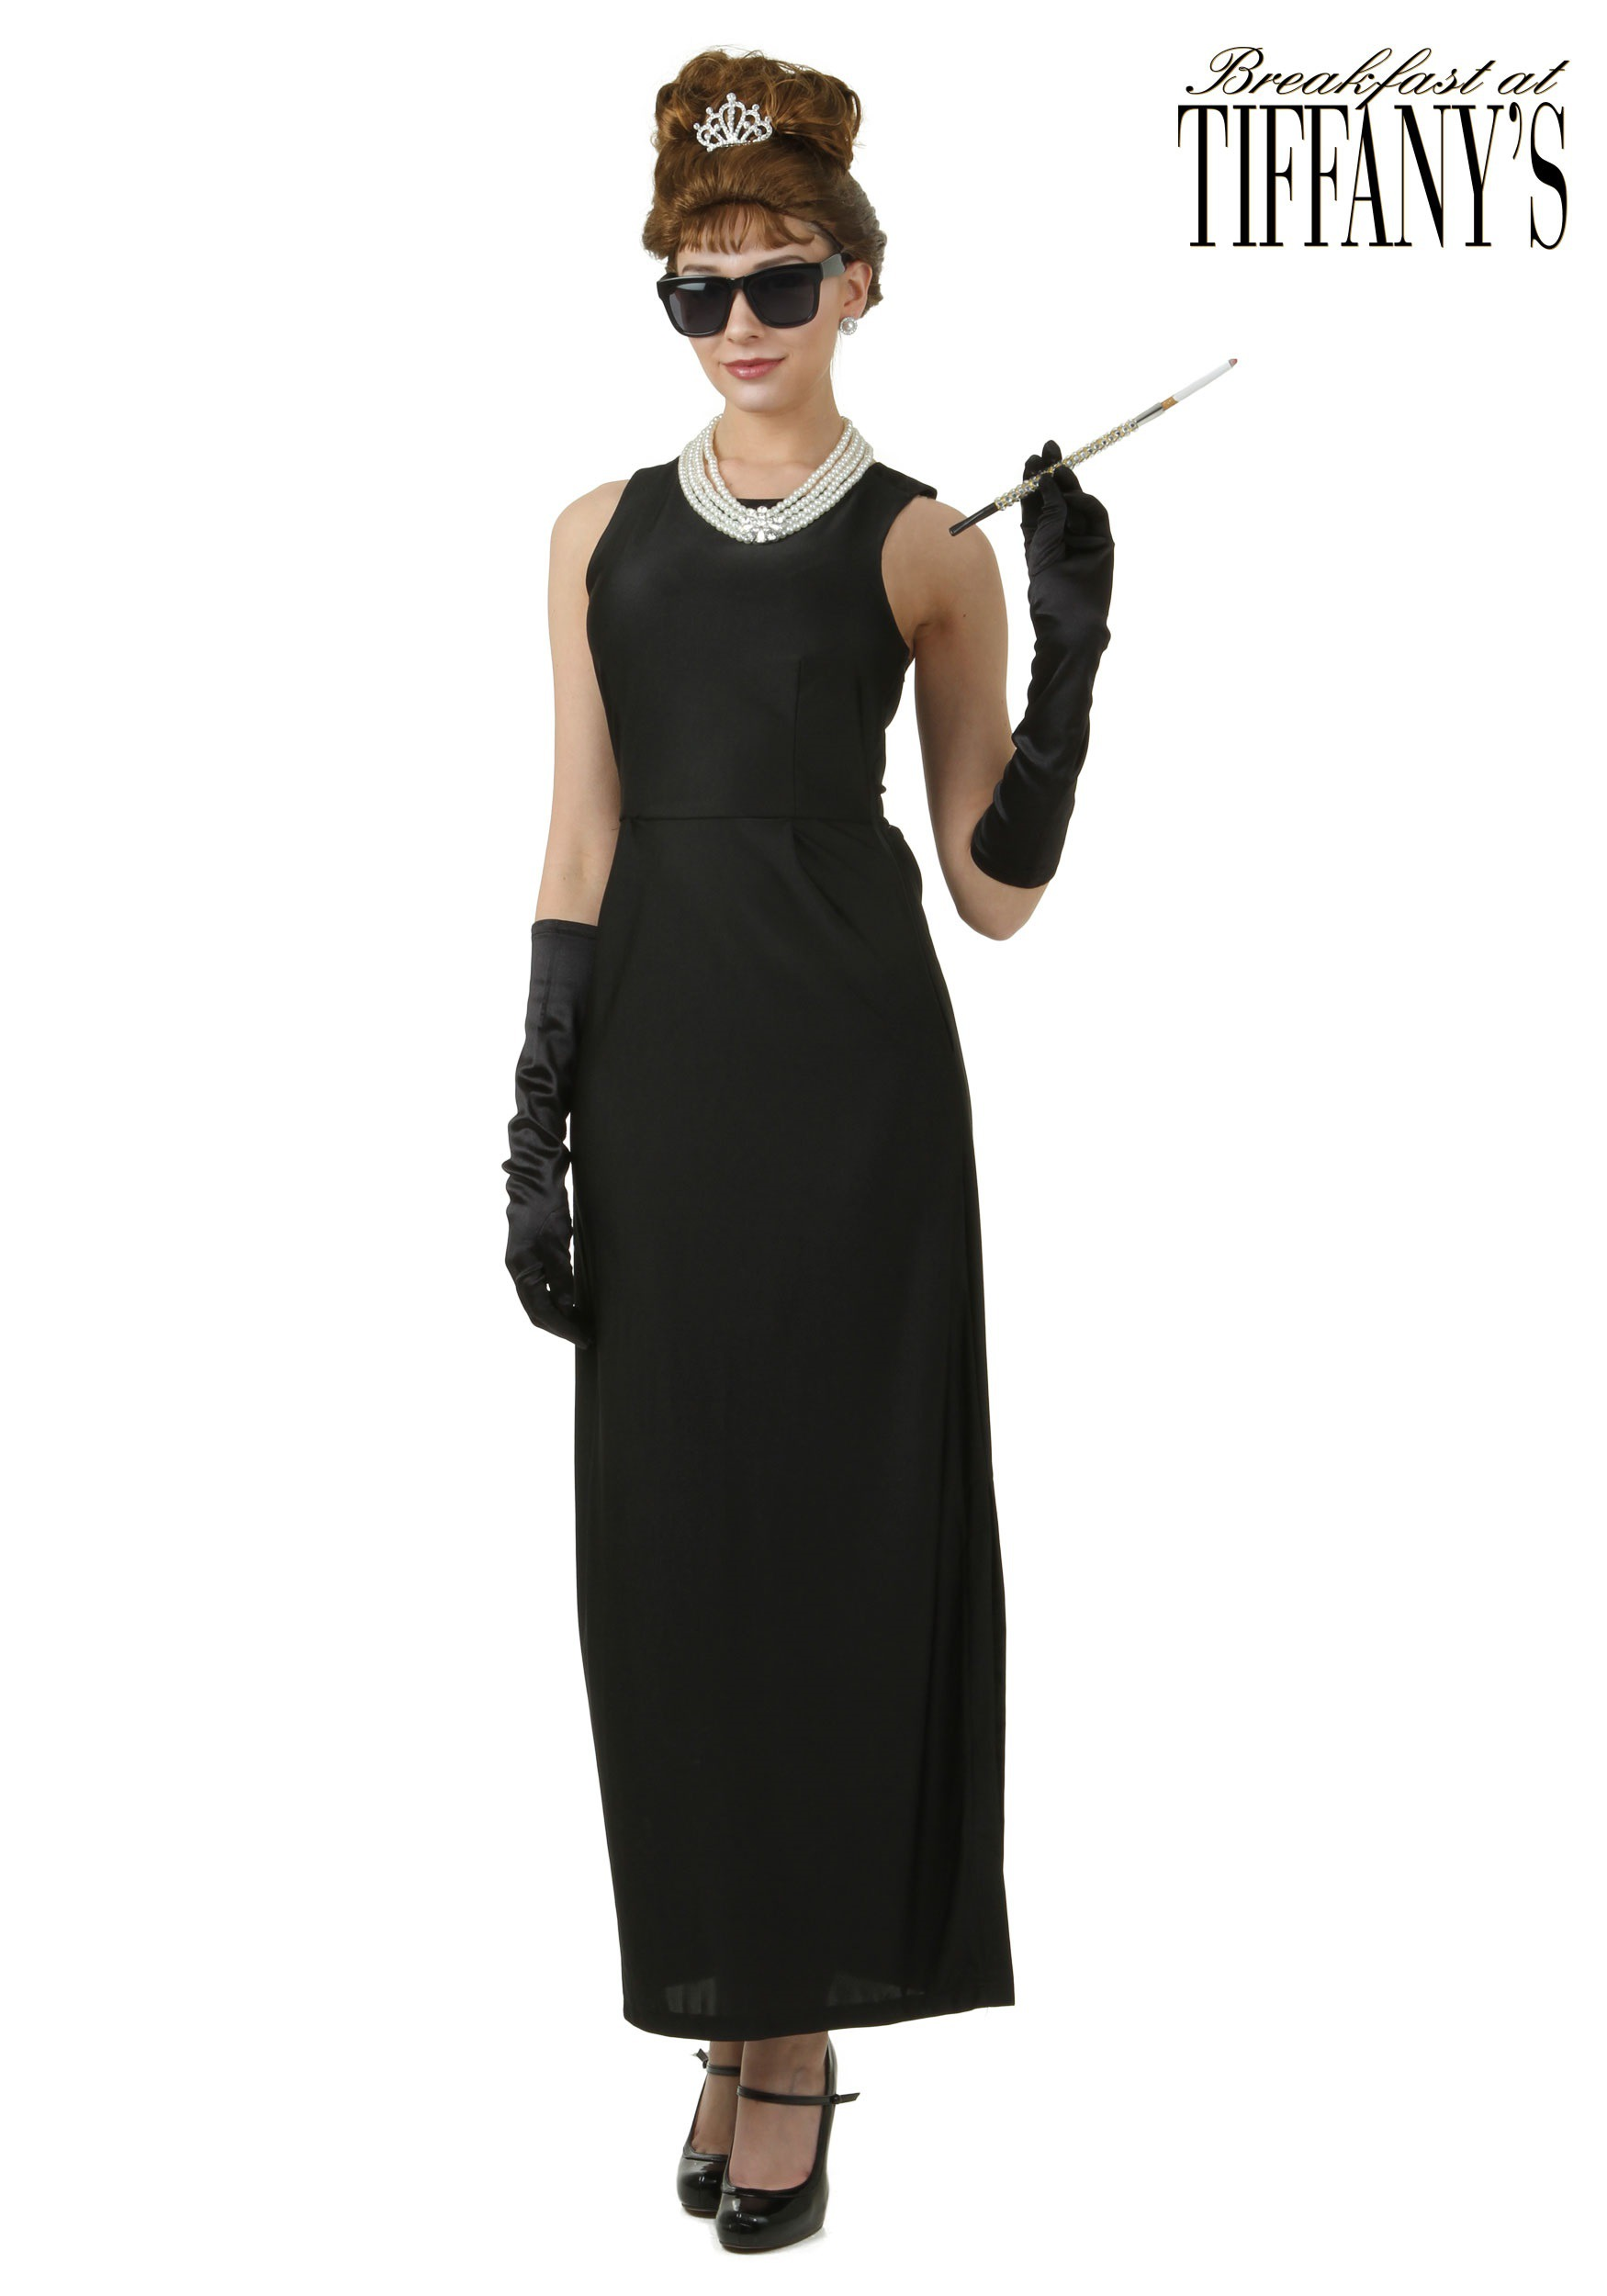 Plus Size Breakfast at Tiffany's Holly Golightly Costume